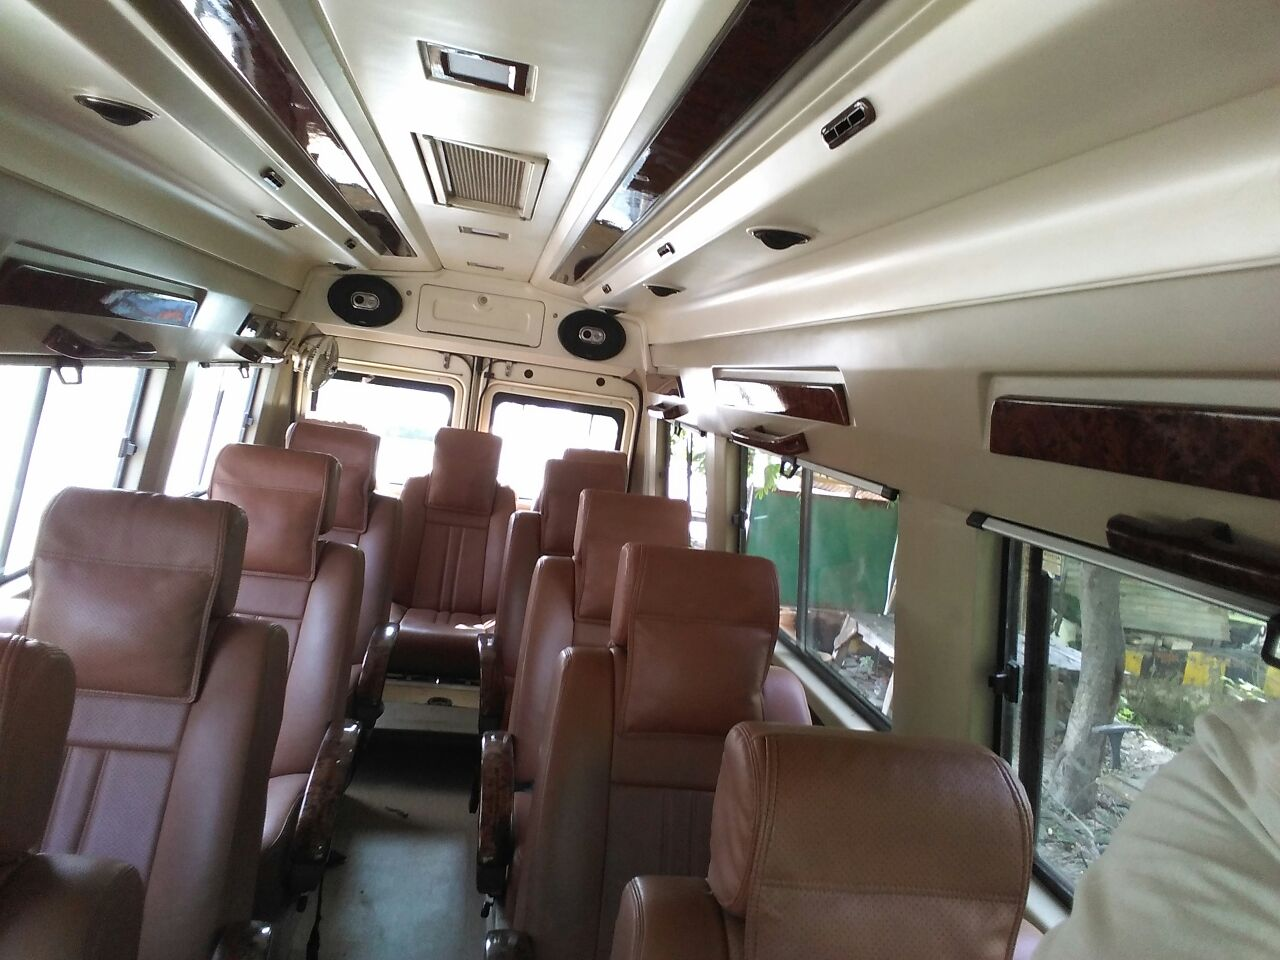 9 Seater Luxury tempo Traveller hire in Delhi